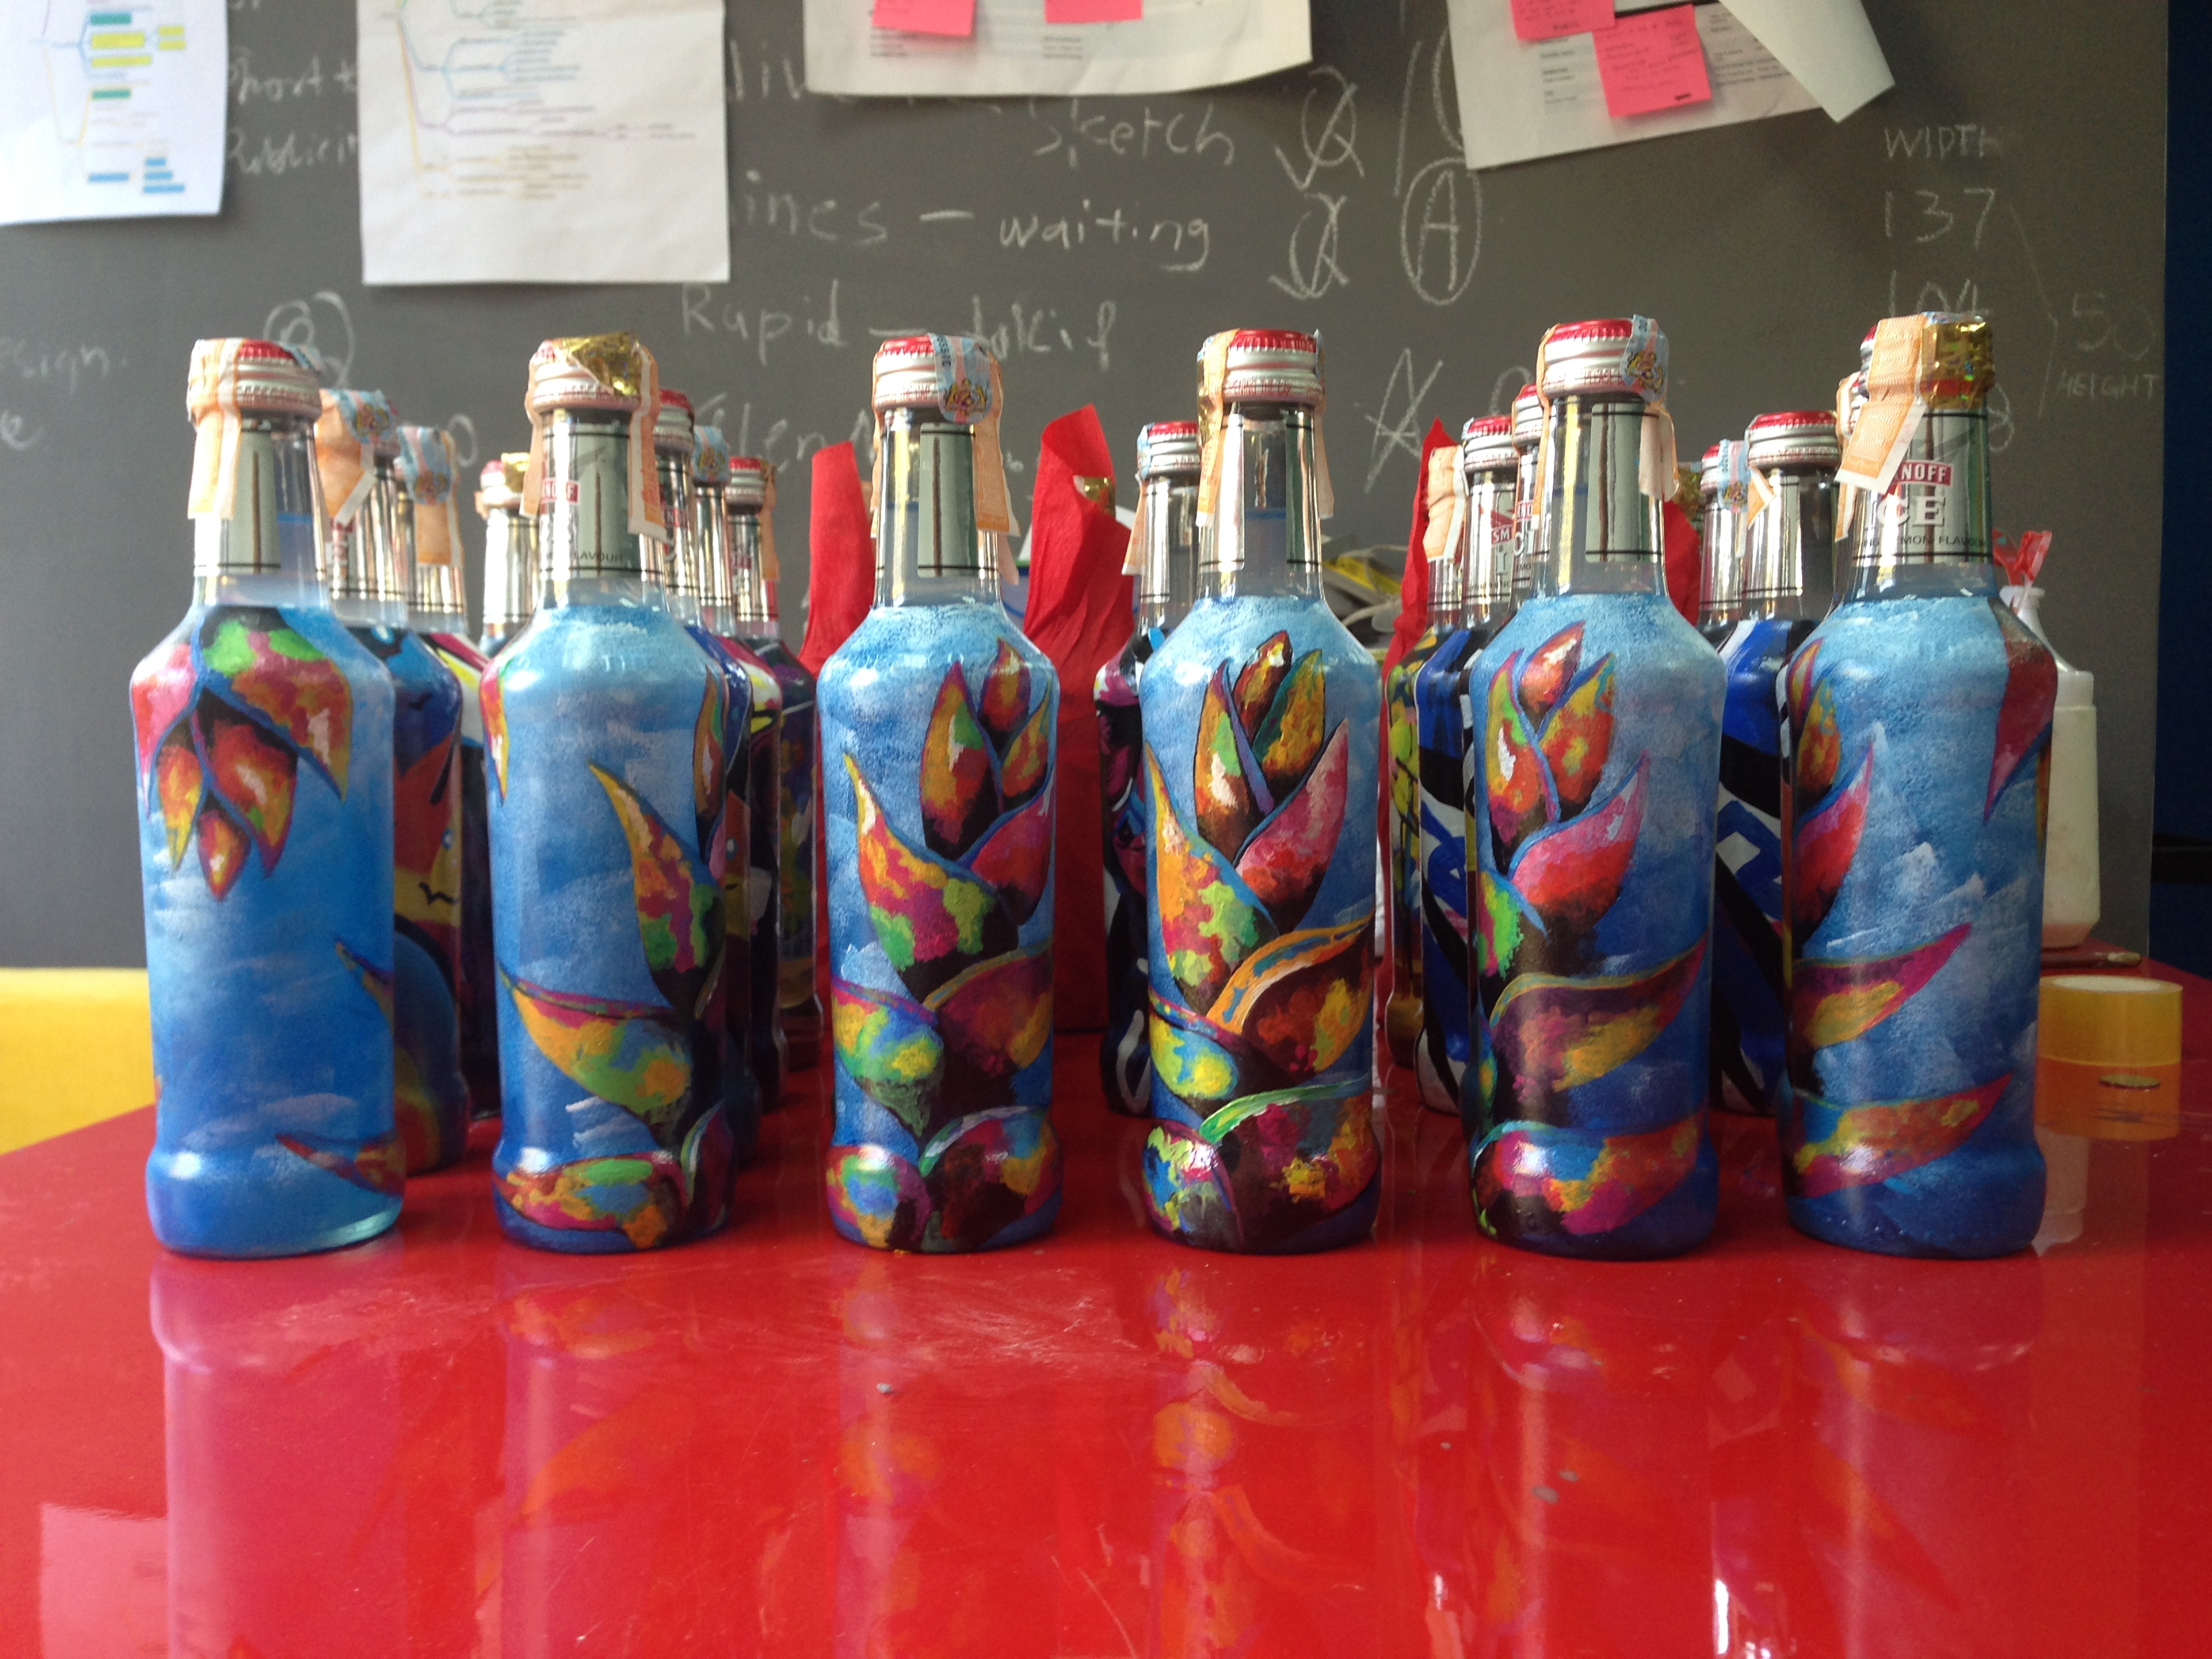 Painted Bottles For Smirnoff Art Misfits